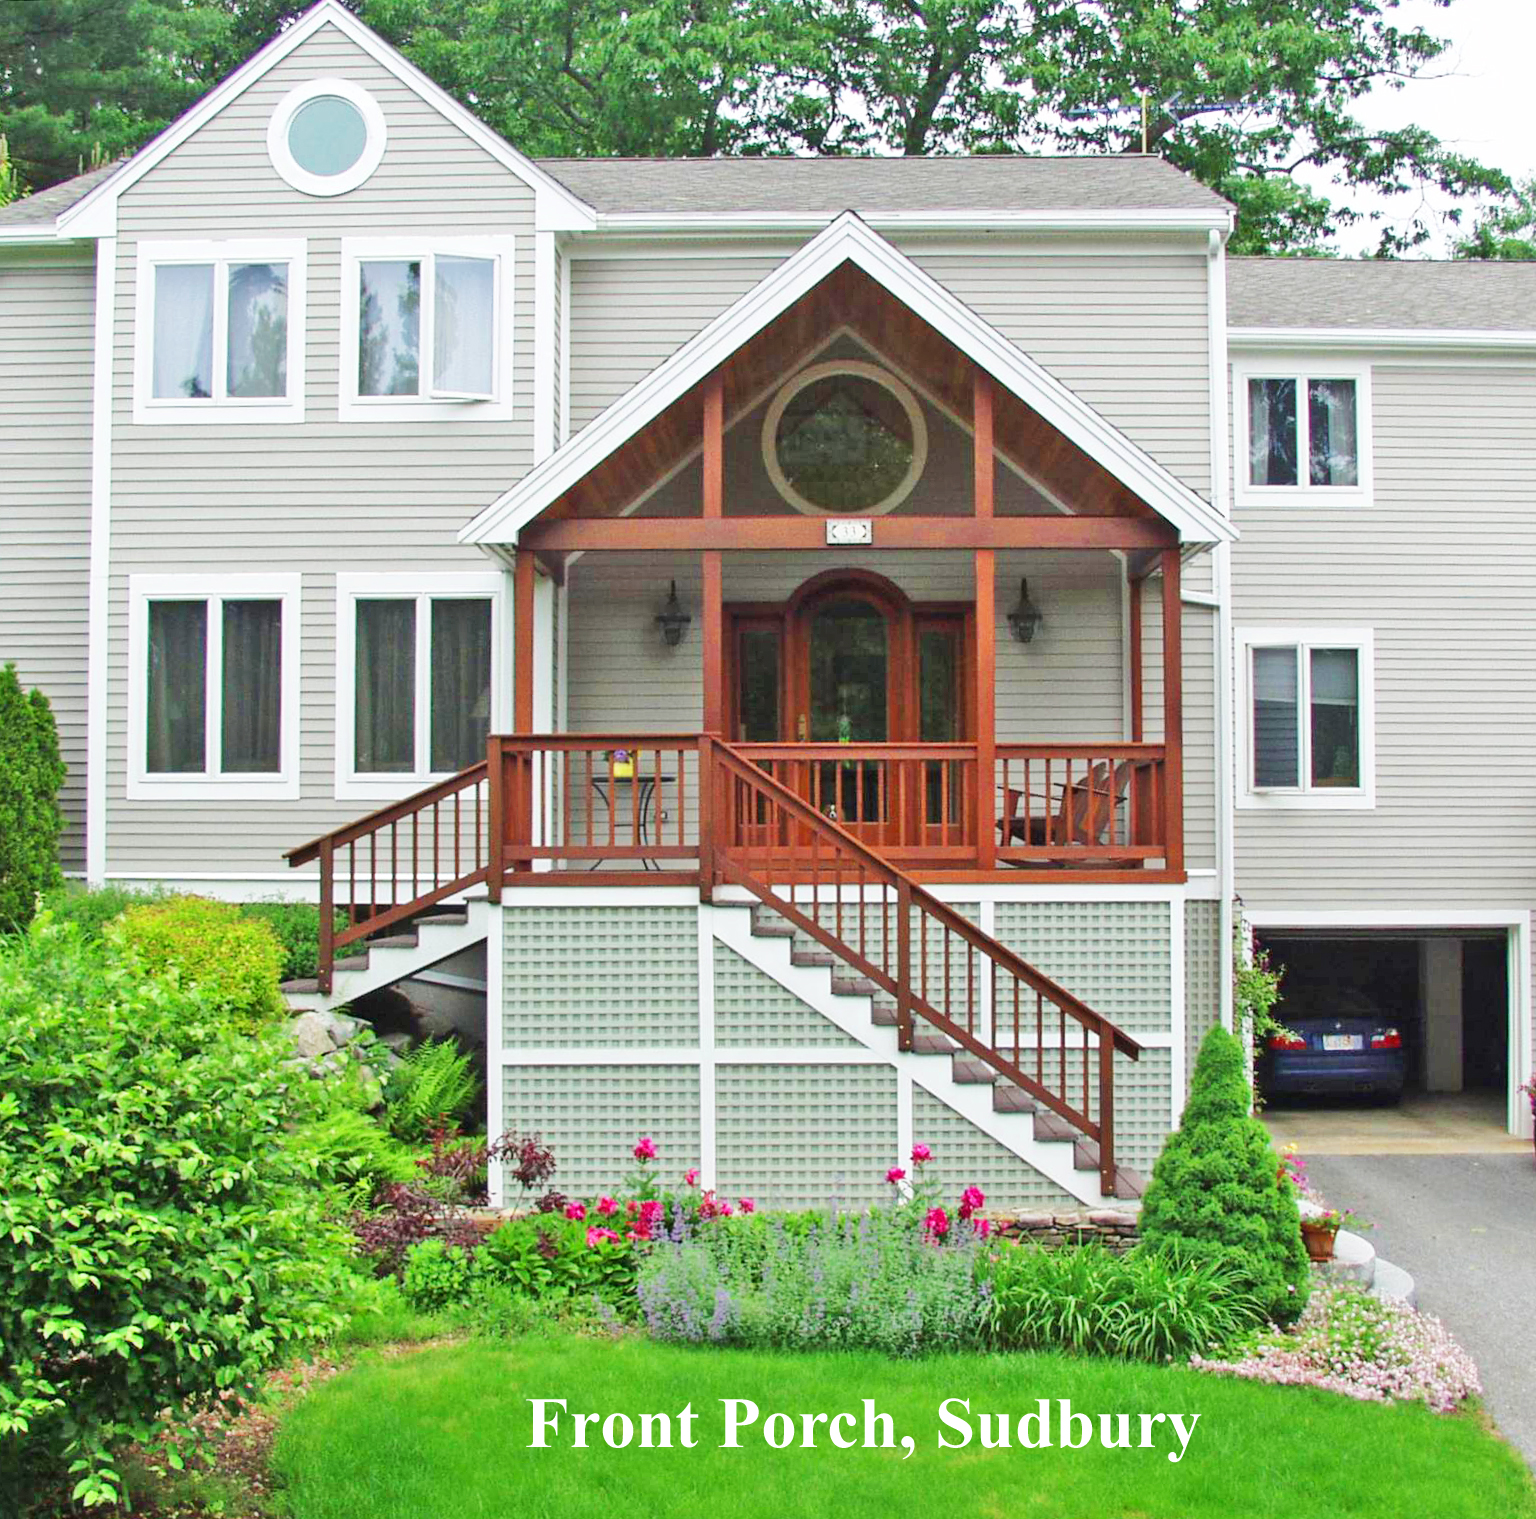 Front Porches A Pictorial Essay Suburban Boston Decks And